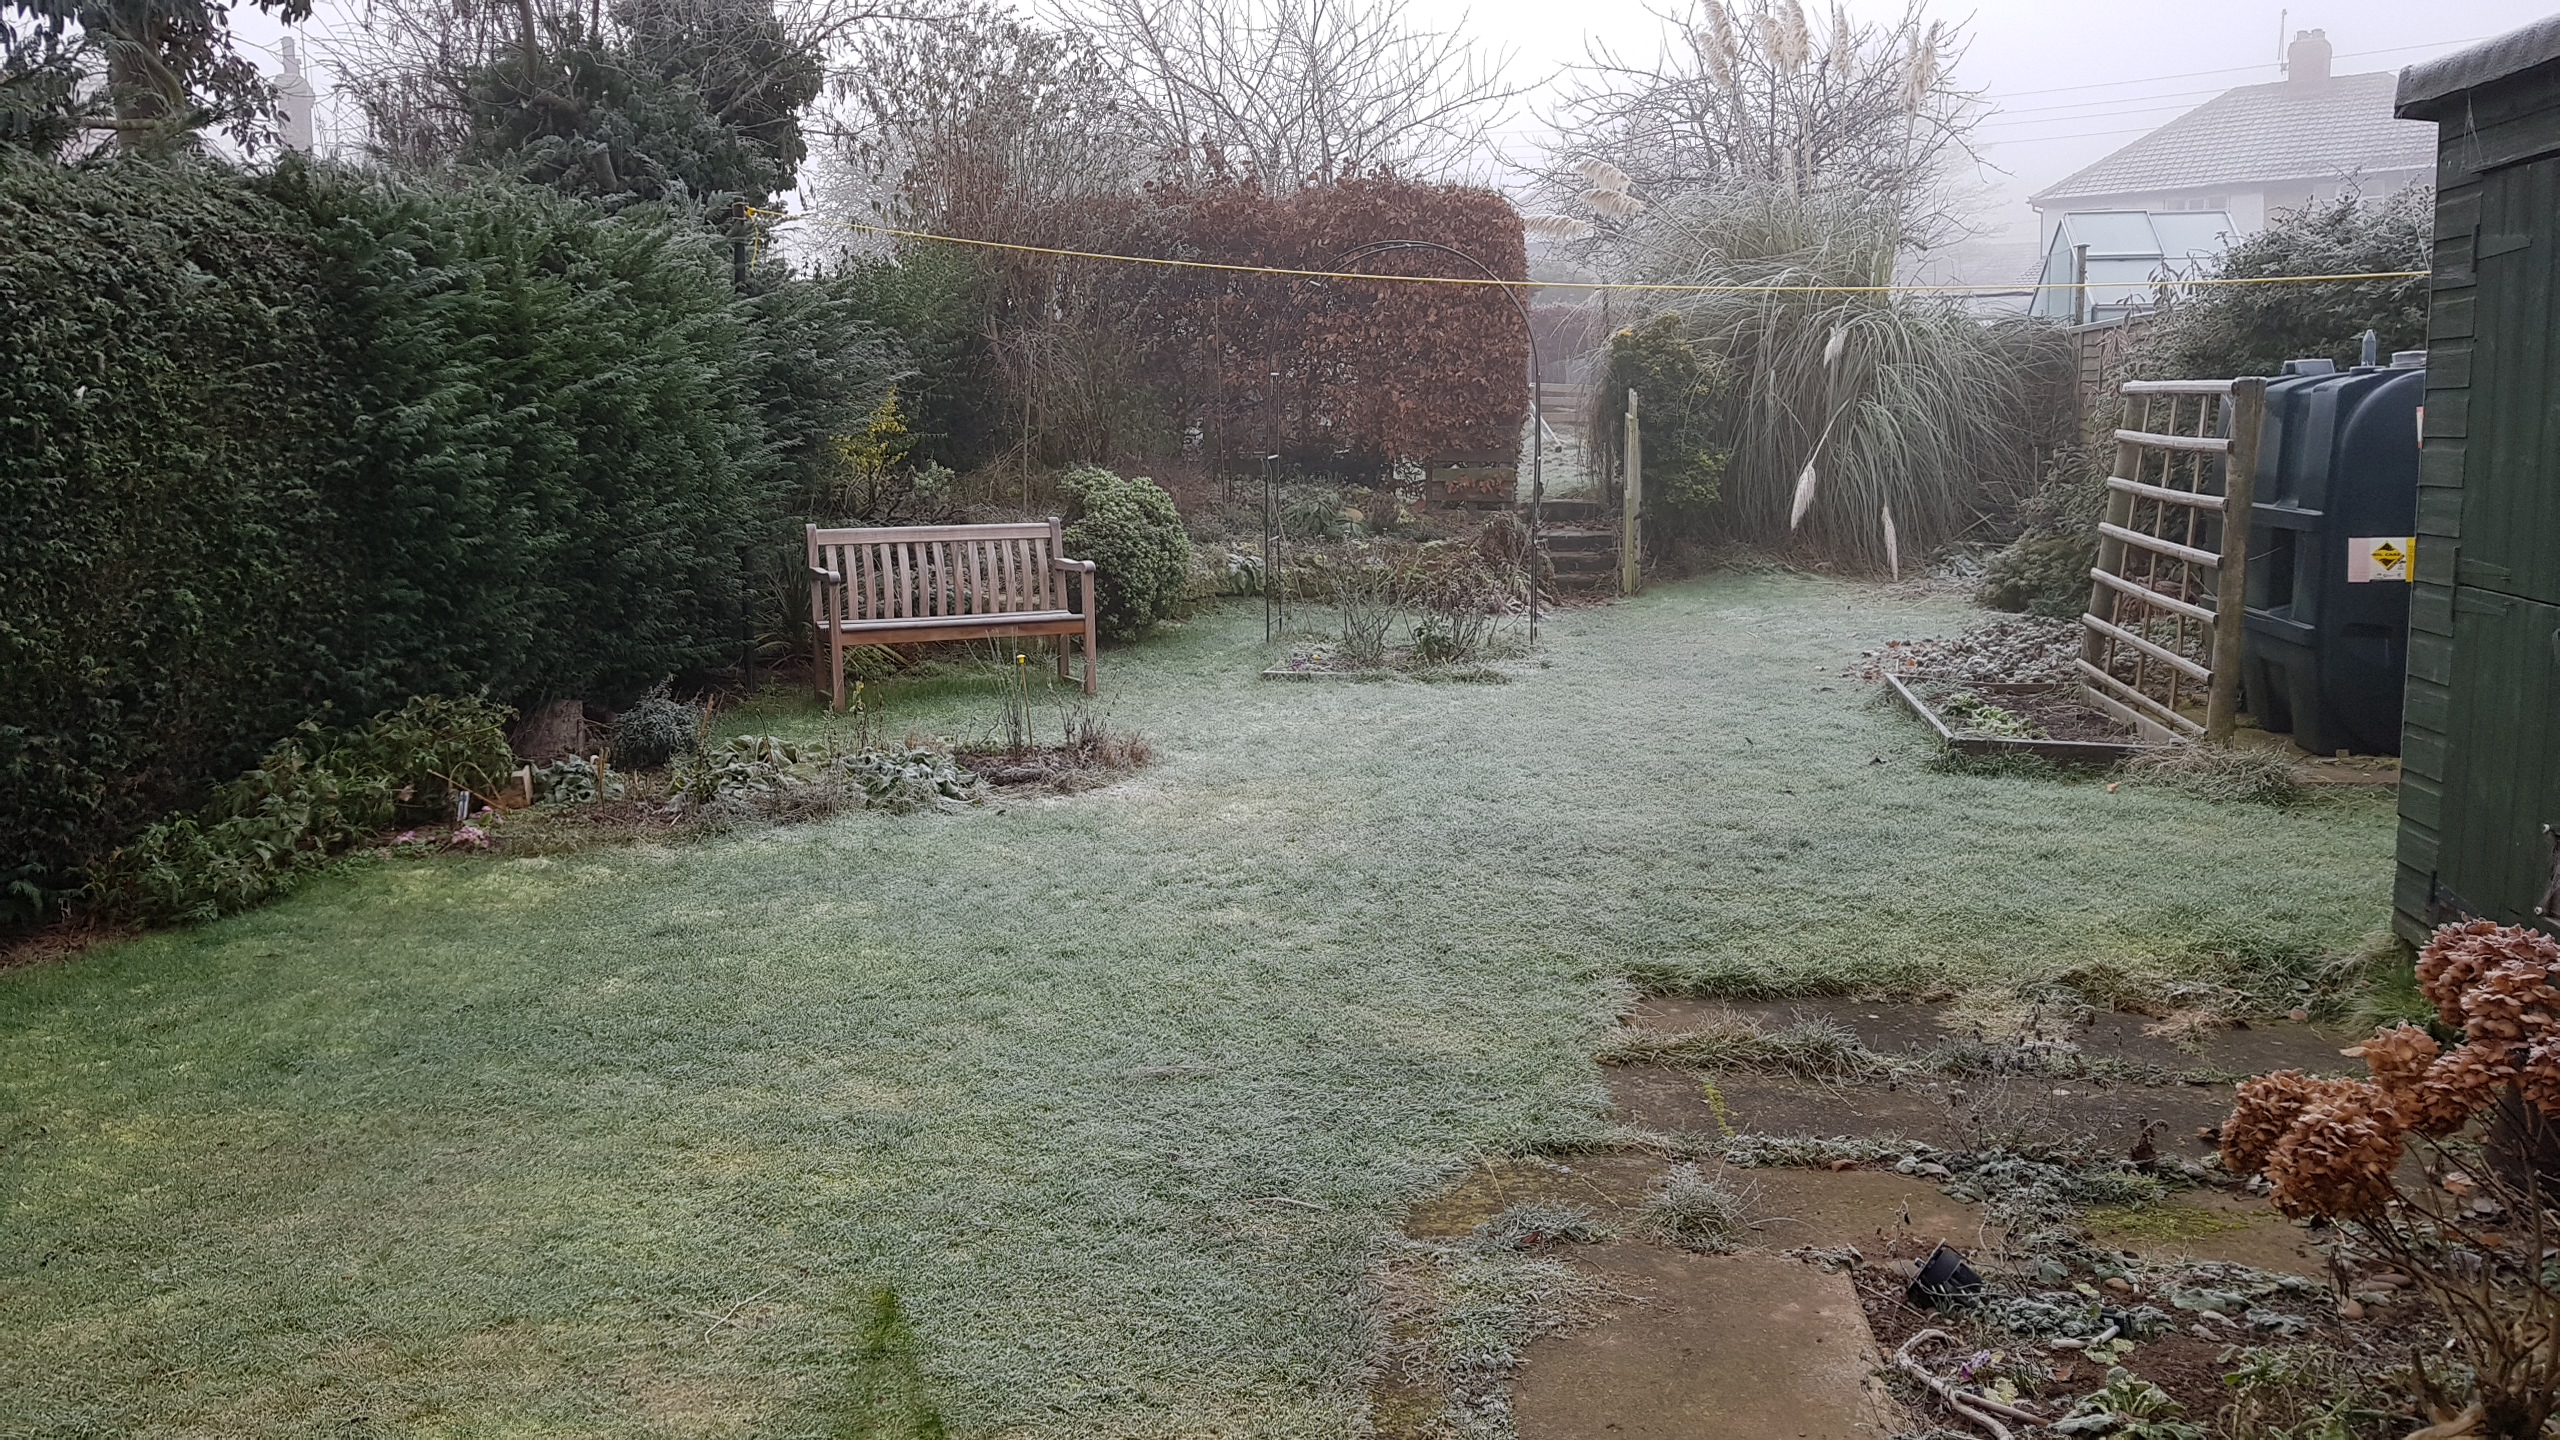 A winter garden covered in frost